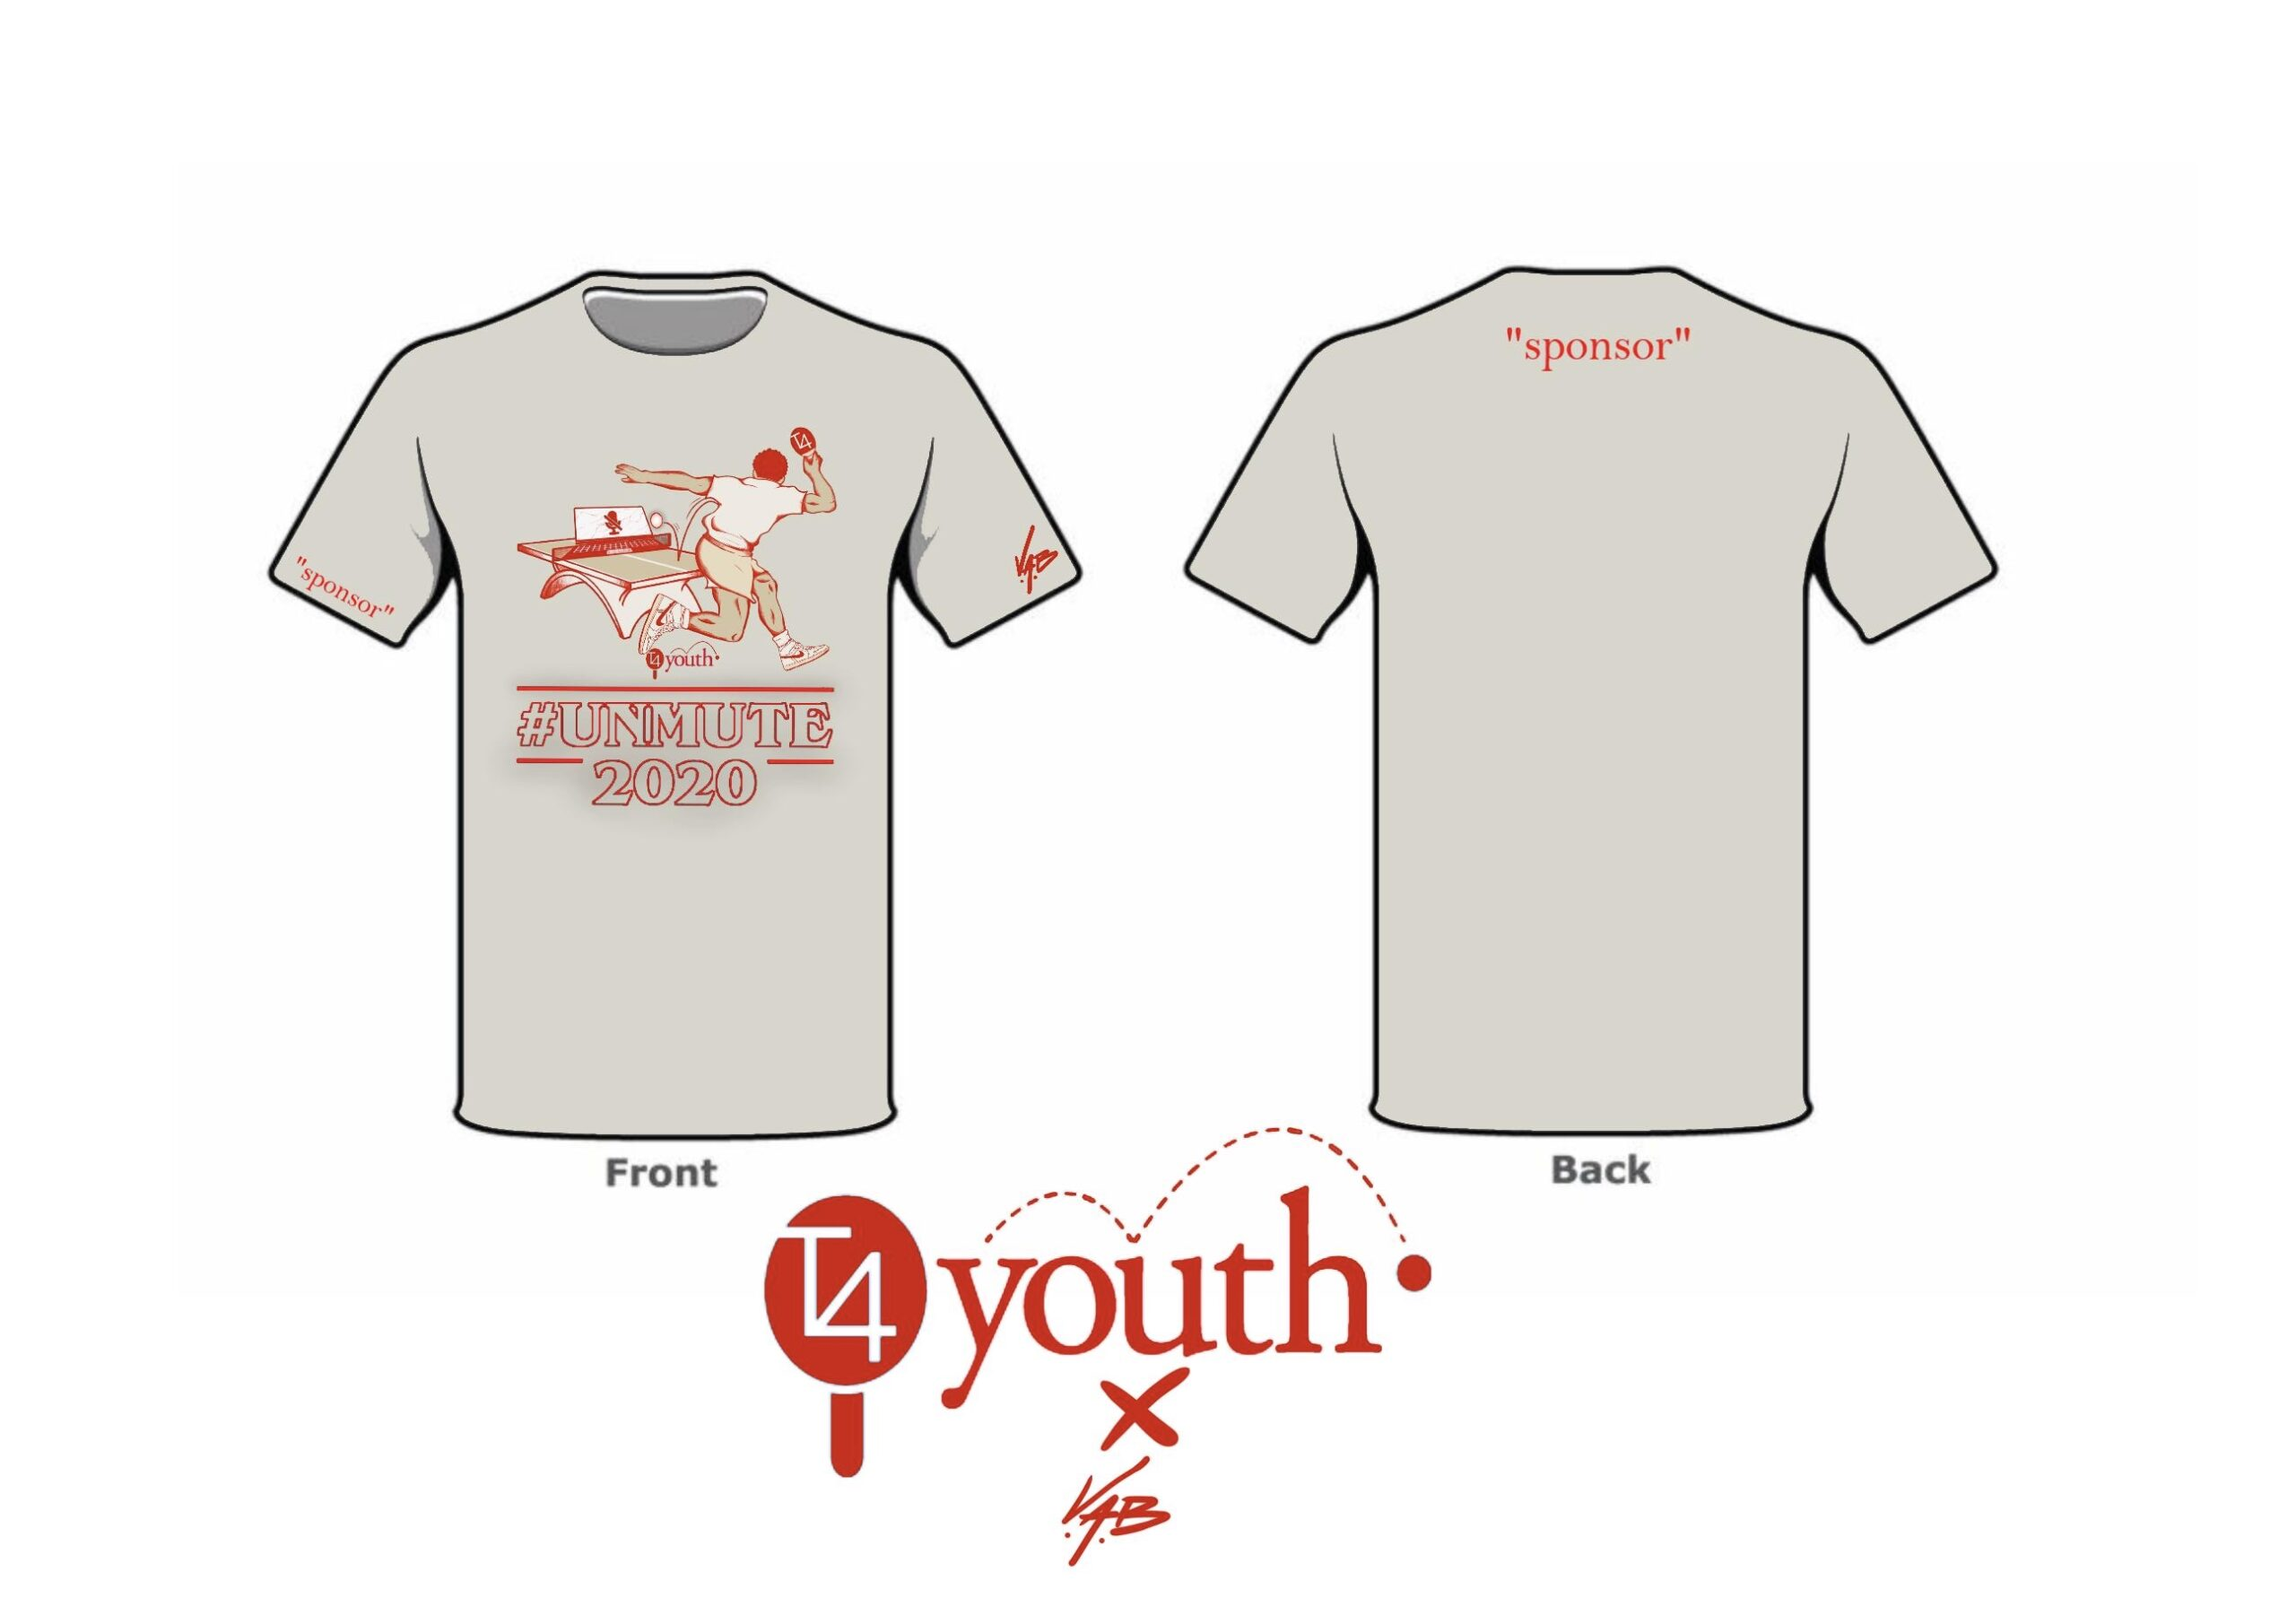 T4Youth T-Shirt